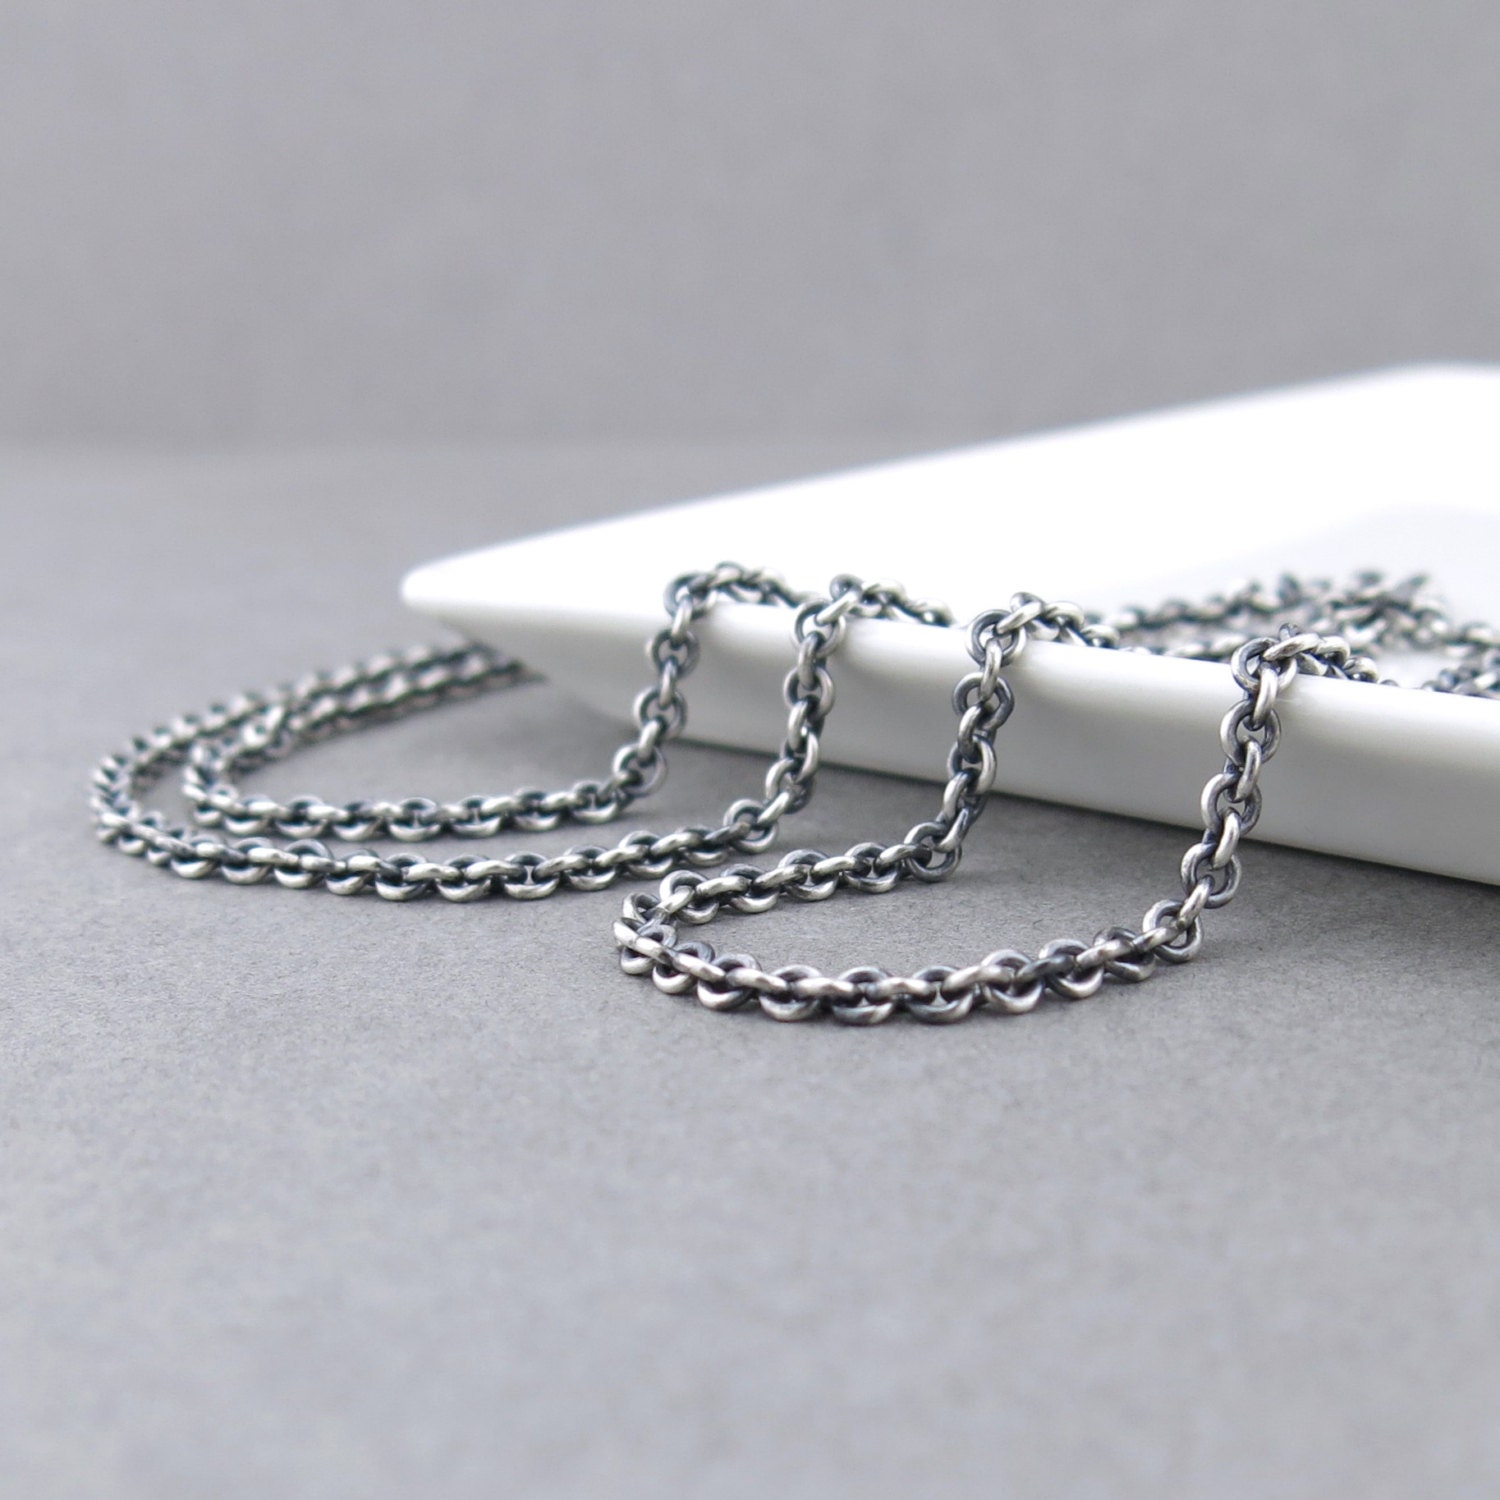 Mens Chain Necklace Heavy Silver Necklace 4 3mm Cable Chain